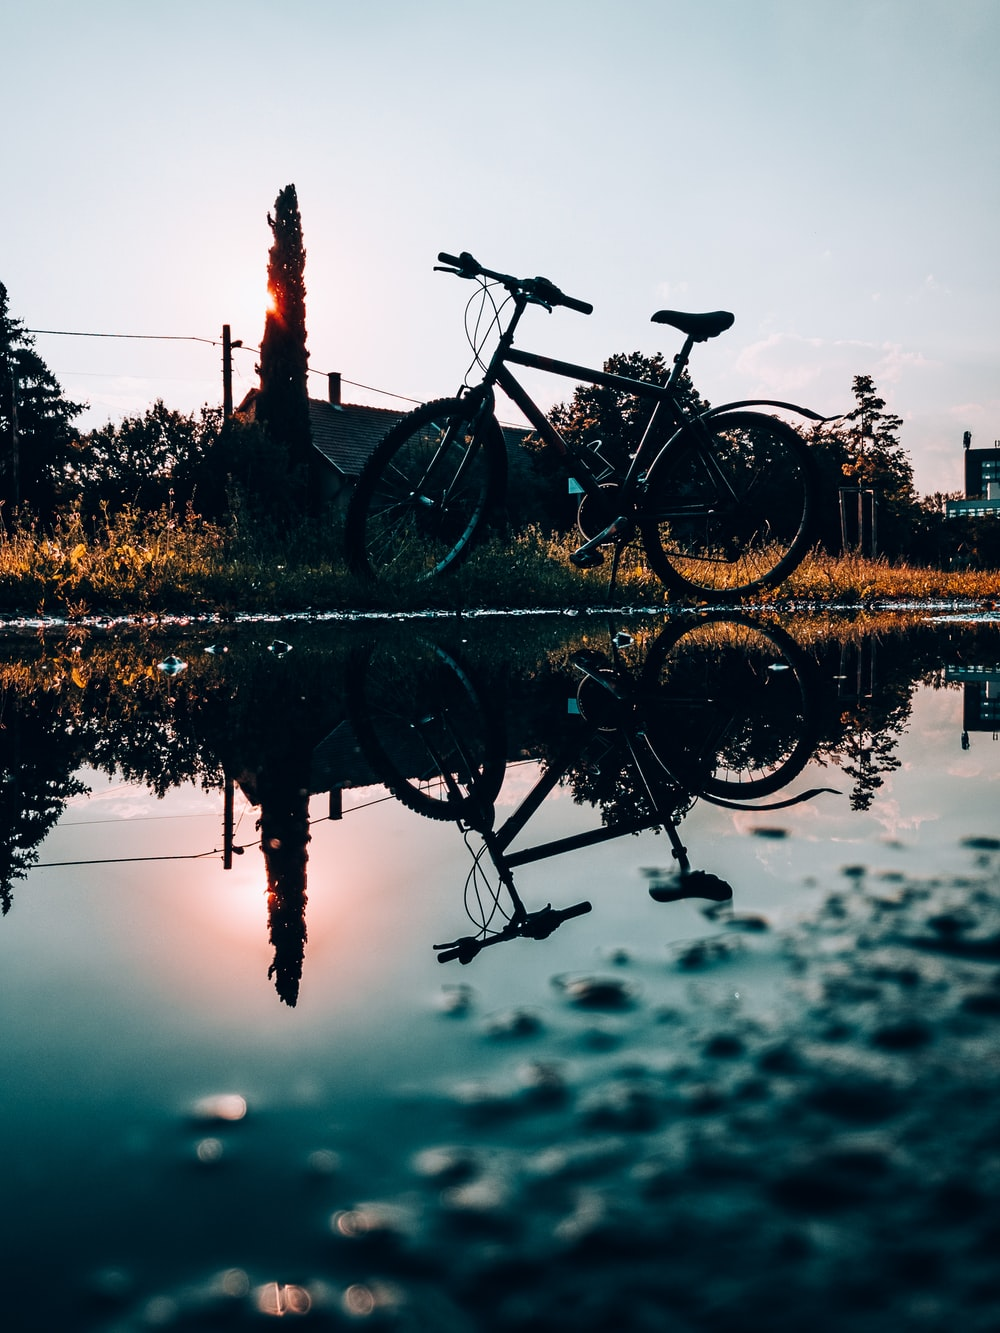 black bicycle on brown wooden fence near body of water during daytime